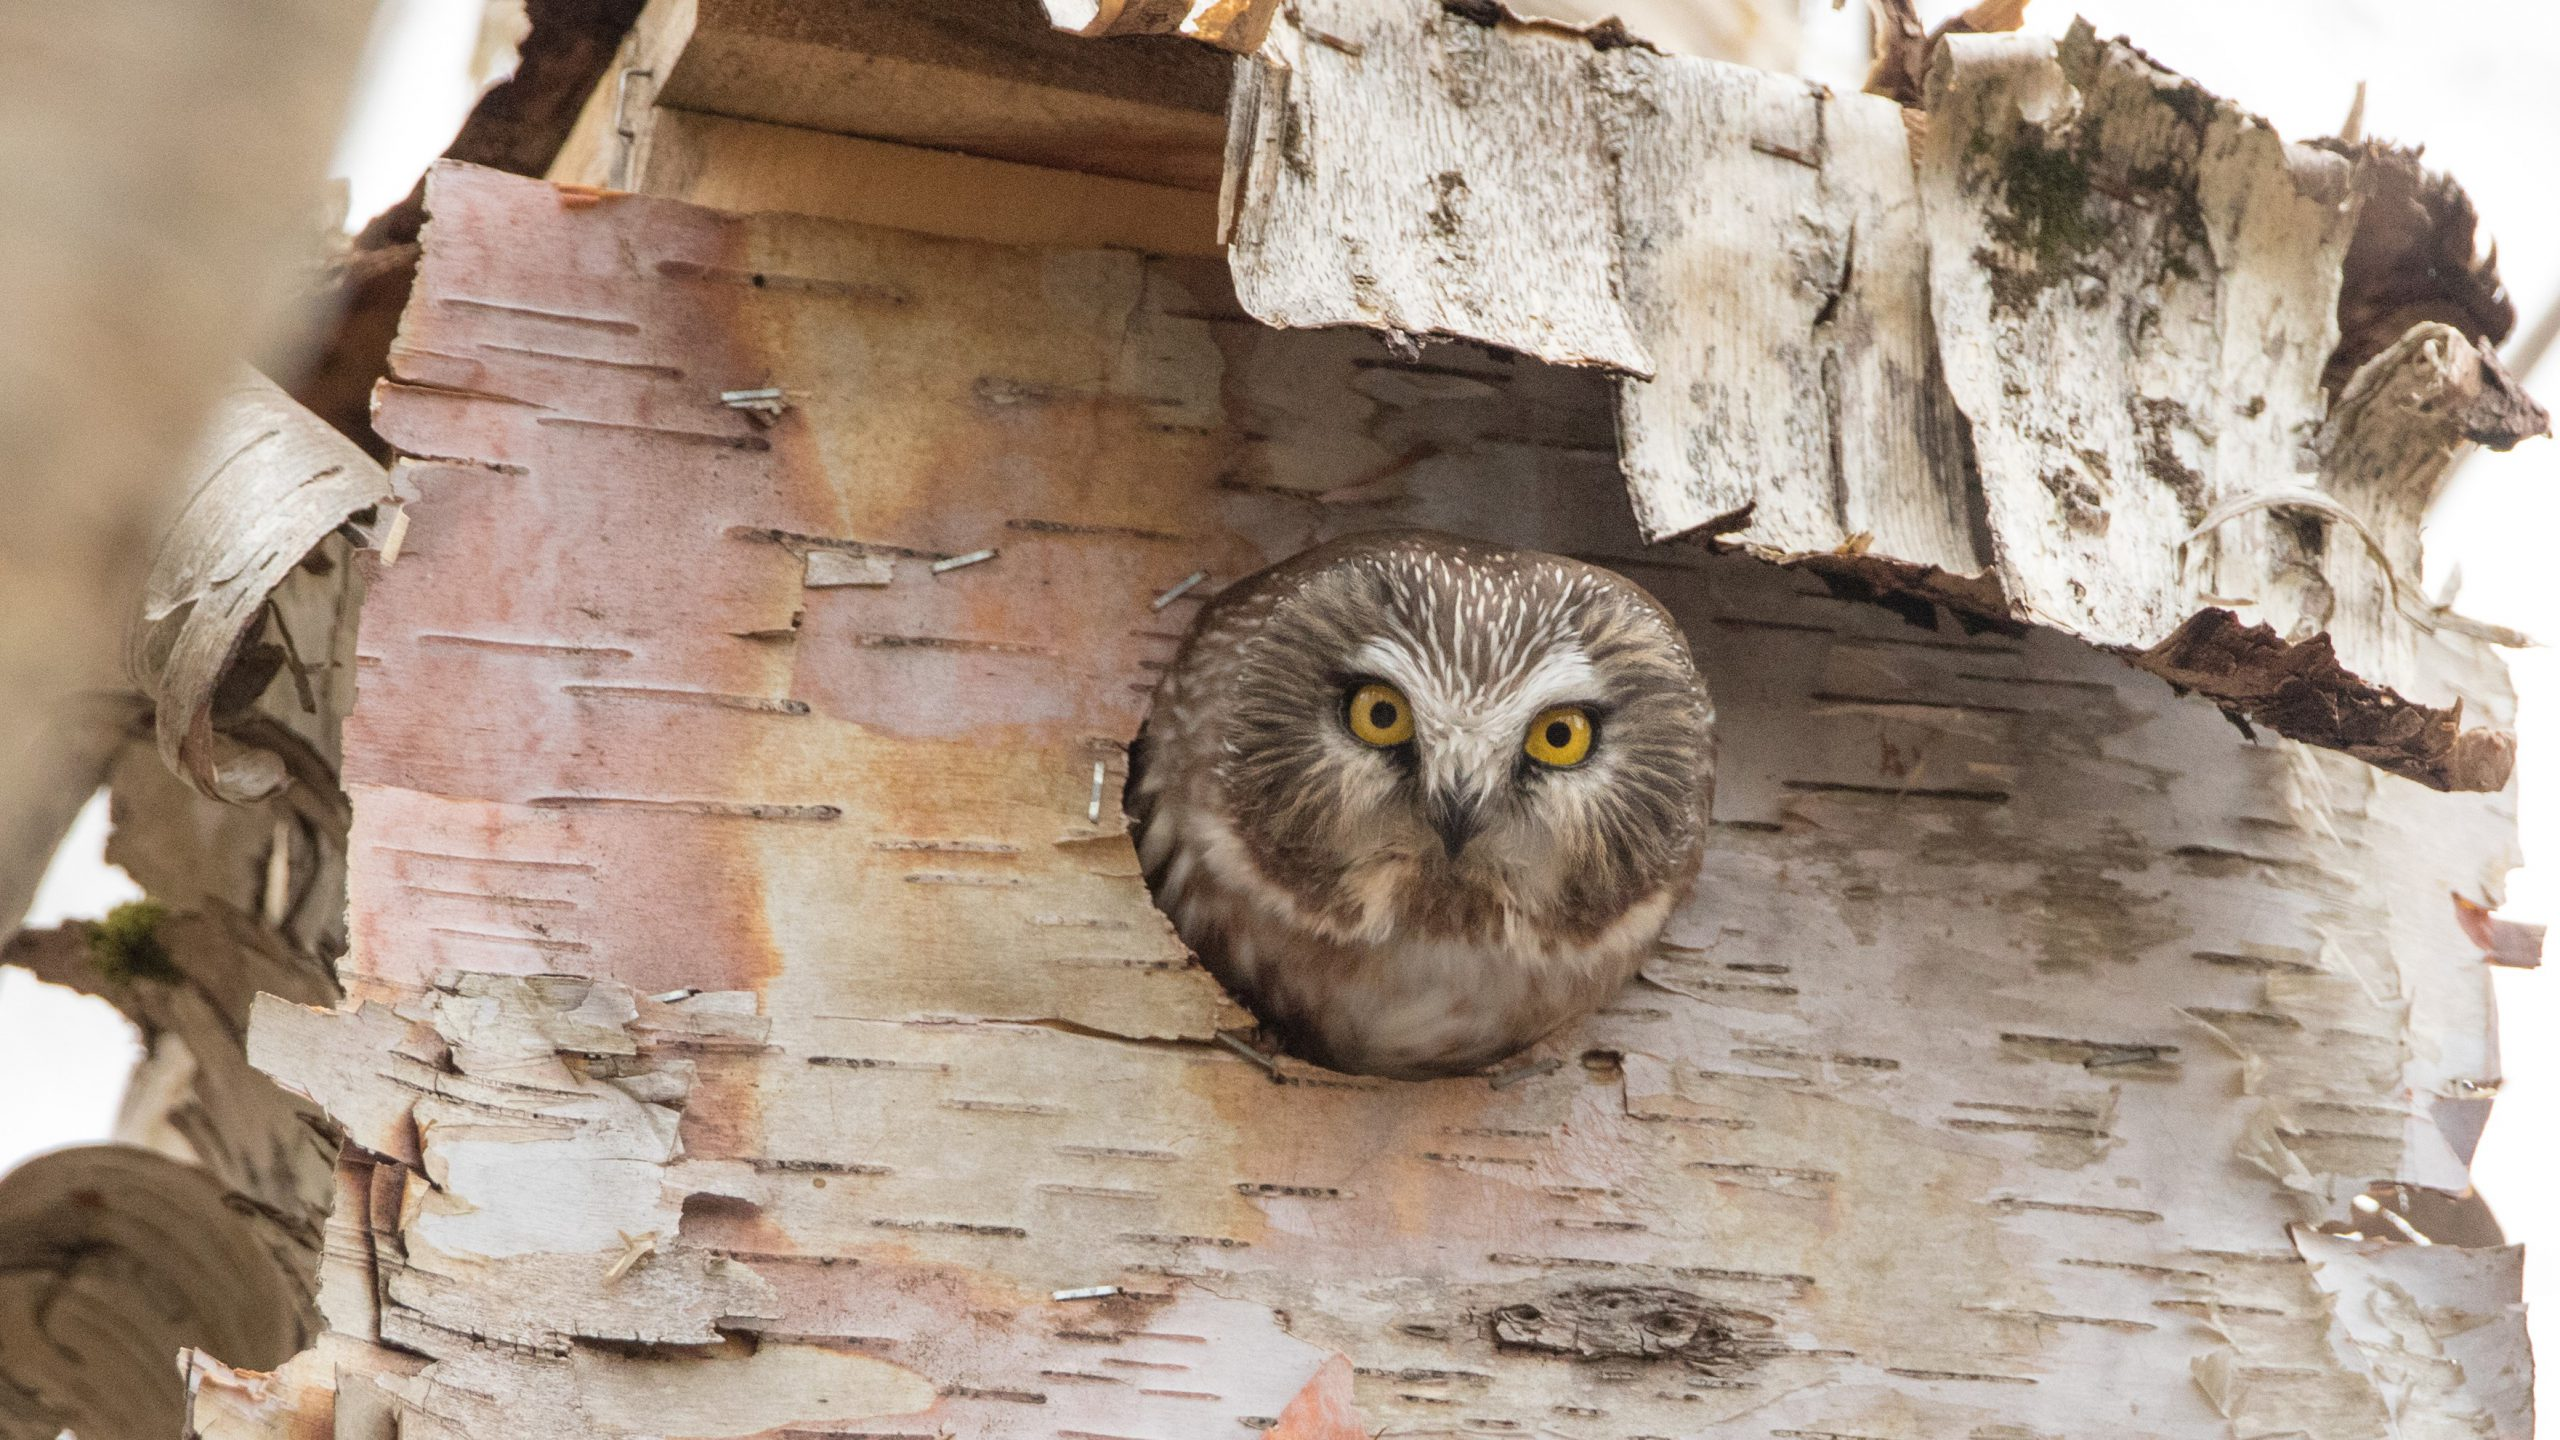 Northern Saw-whet Owl sticking head out of cavity in tree